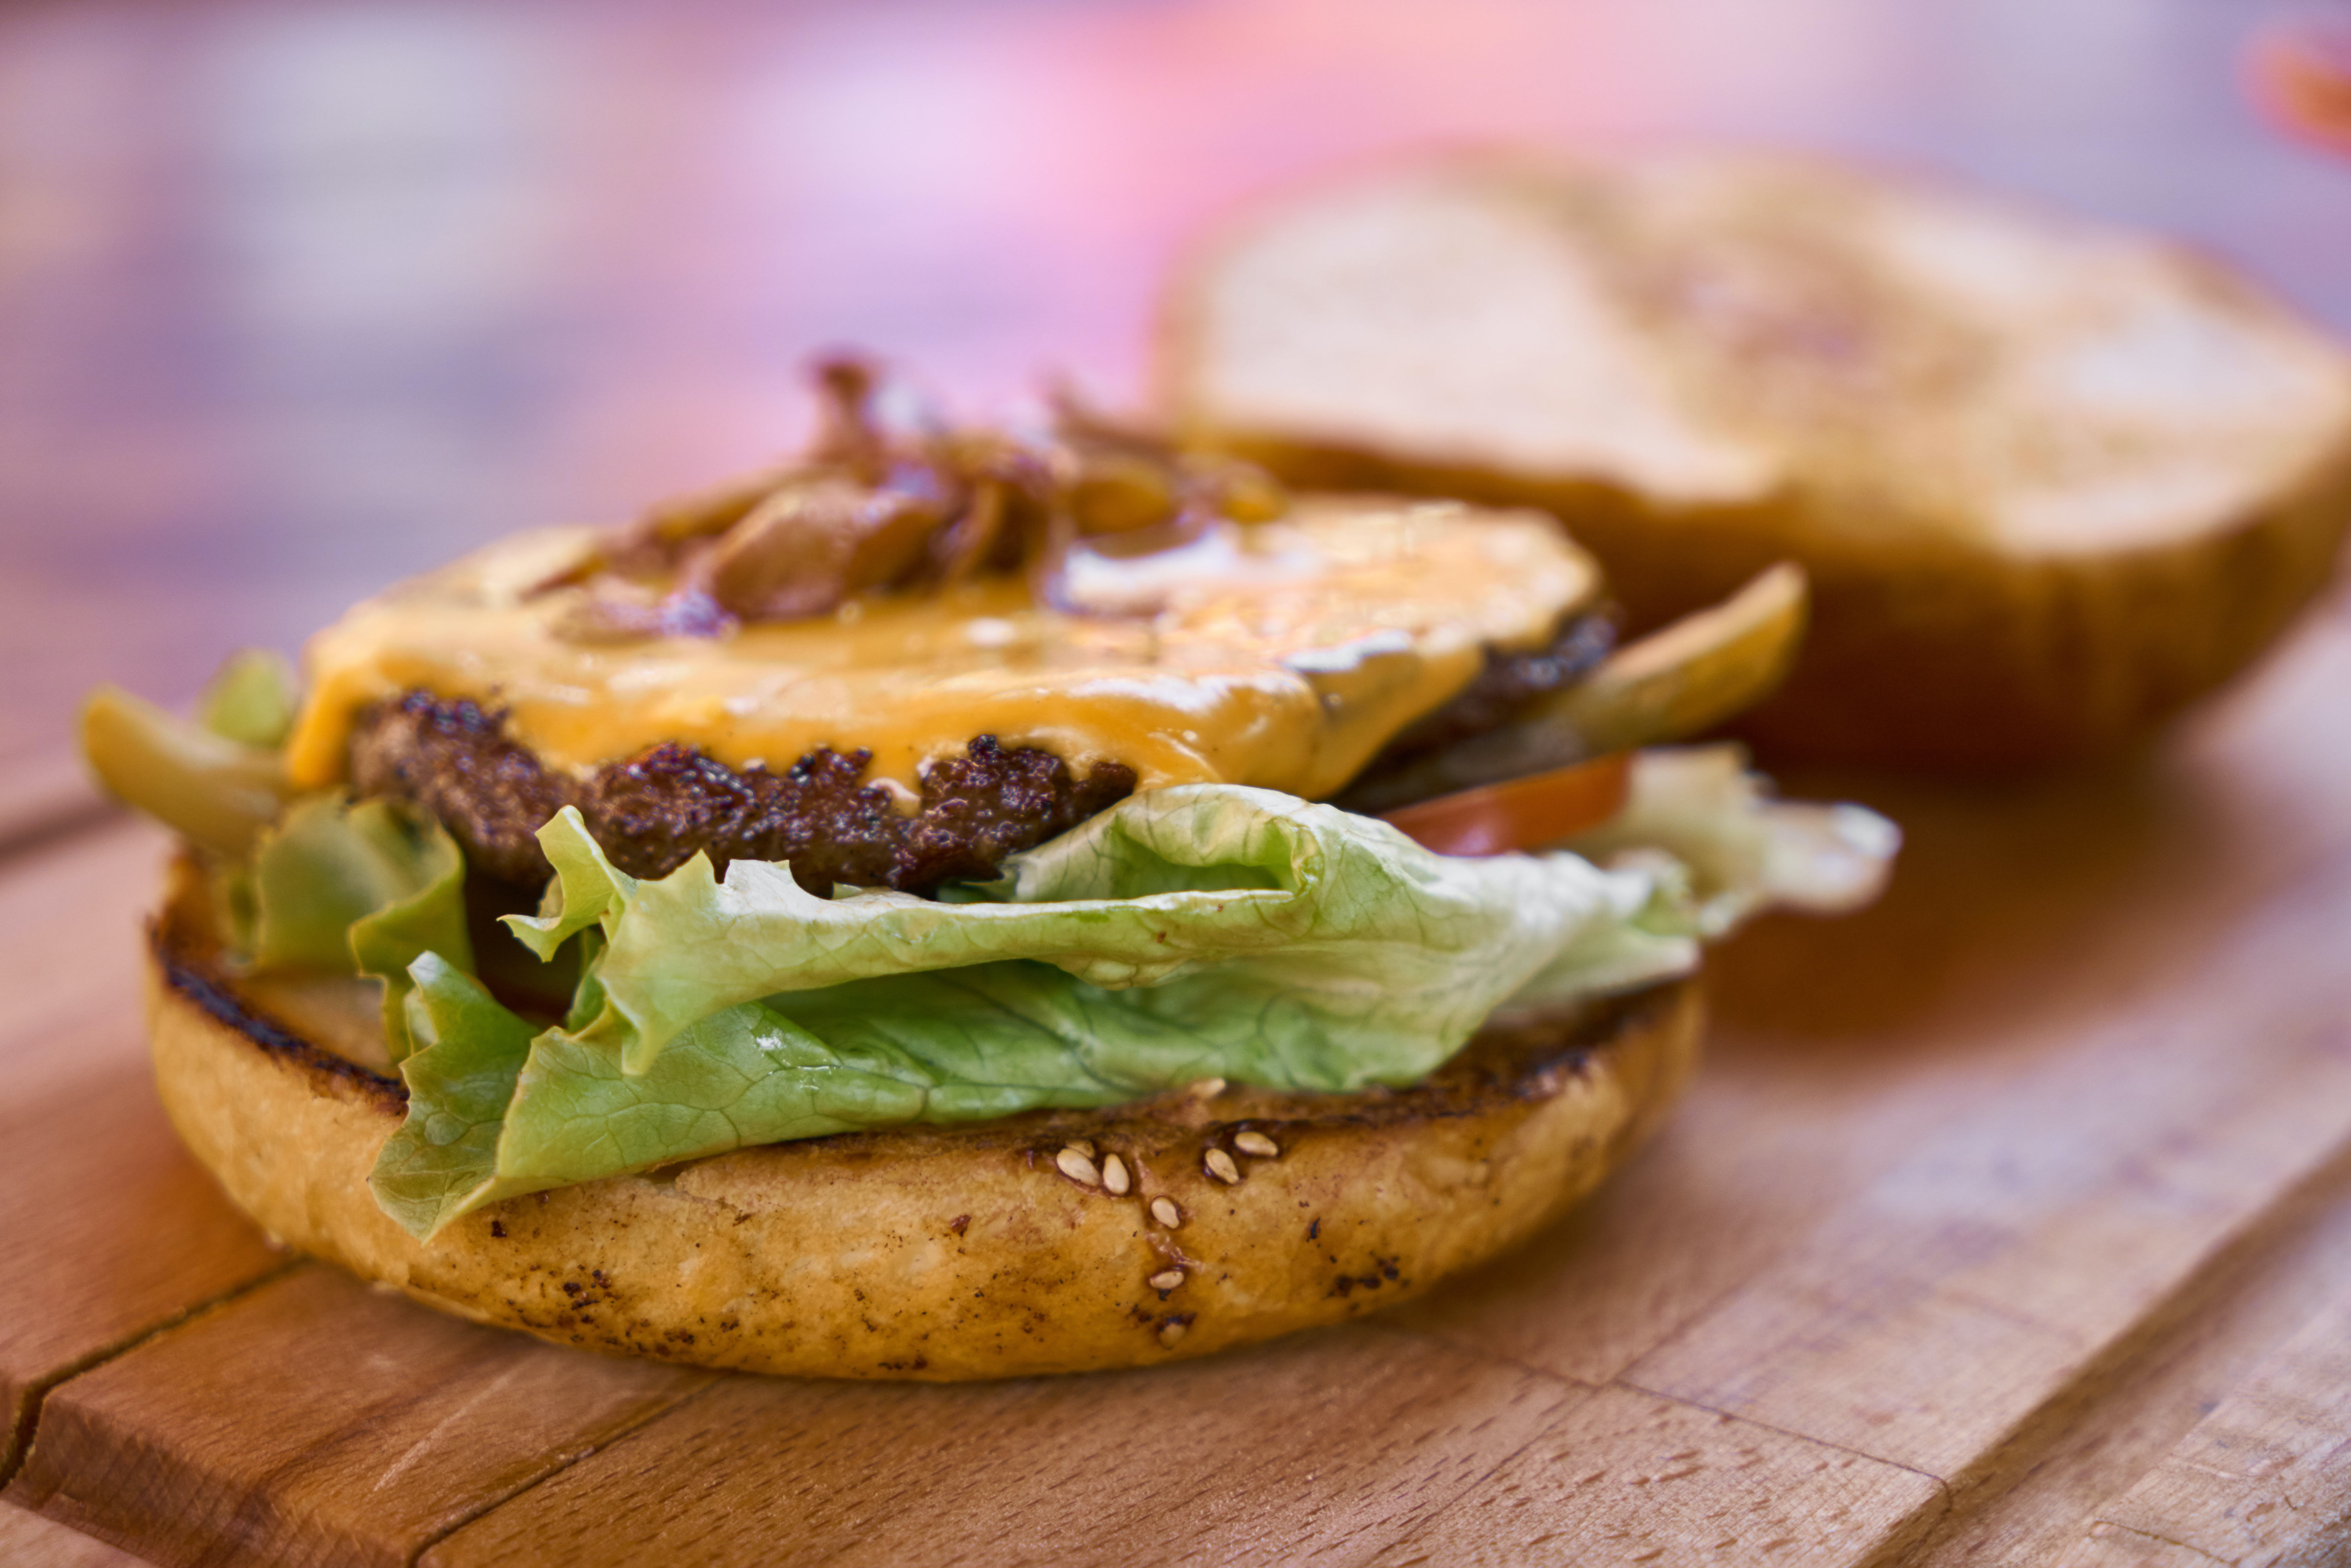 Hamburger With Top Bun Taken Off on Wooden Table